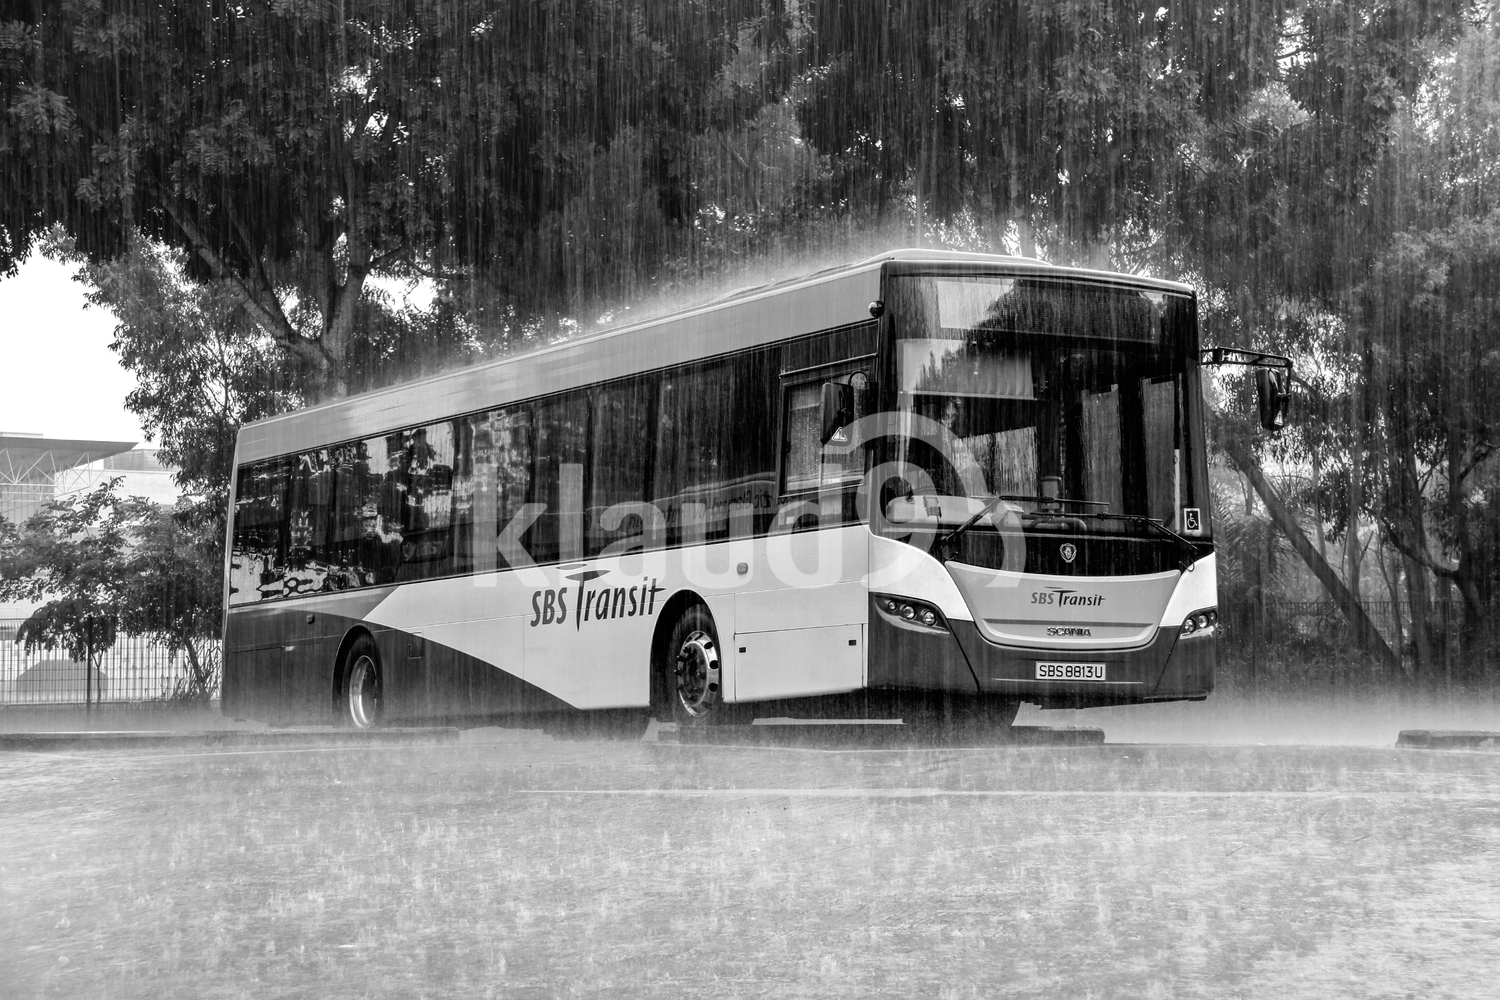 Bus in the rain